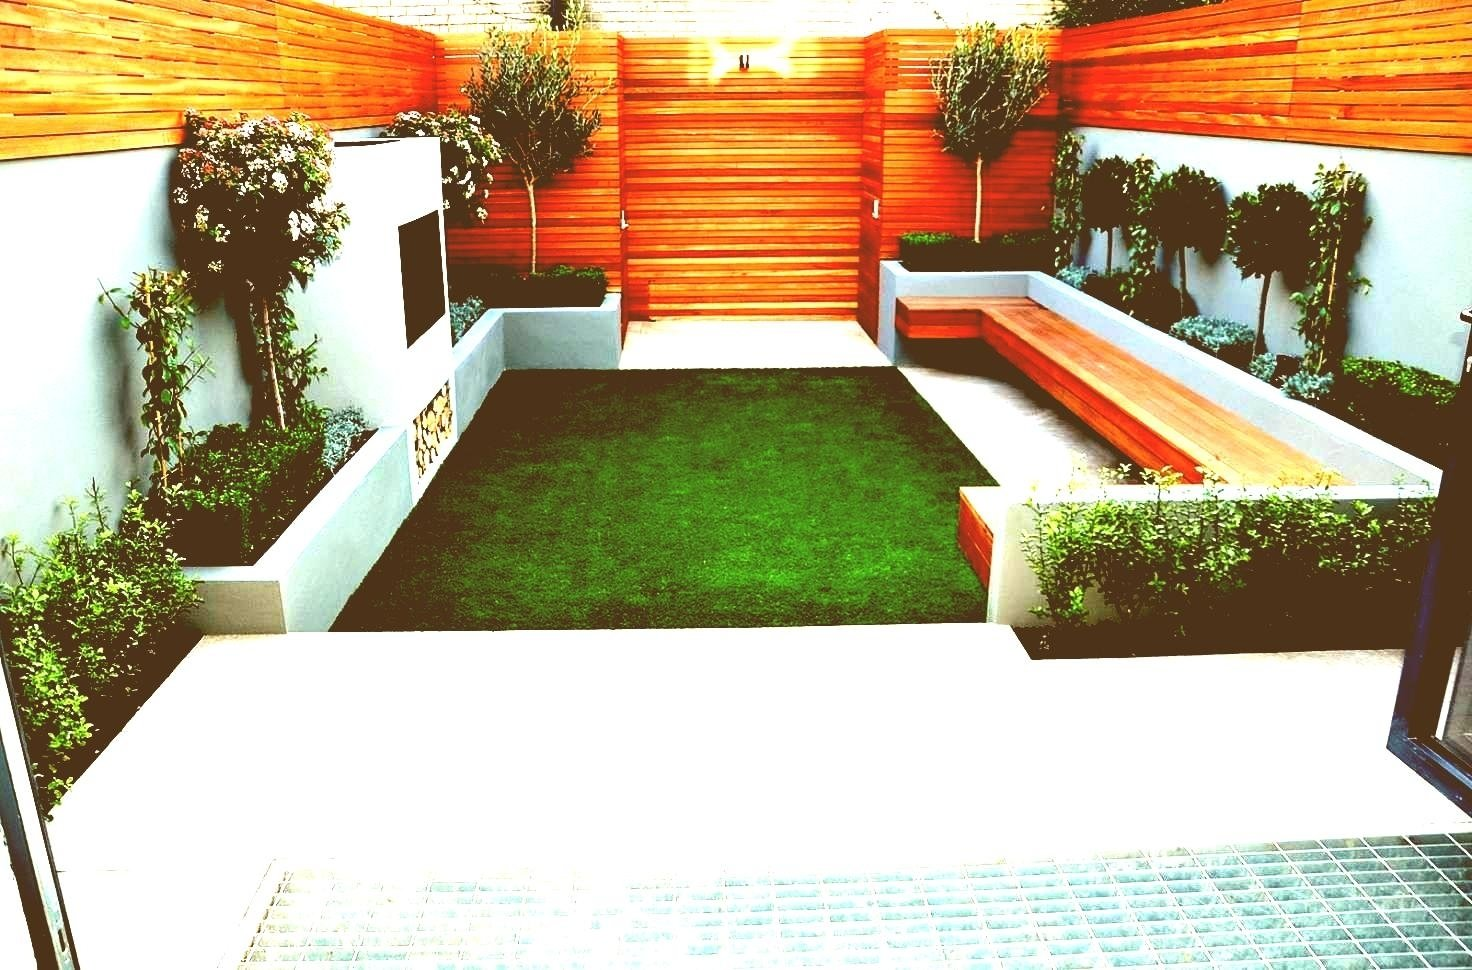 10 Cute Small Garden Ideas On A Budget bold design small garden ideas on a budget very impressive is your 2021